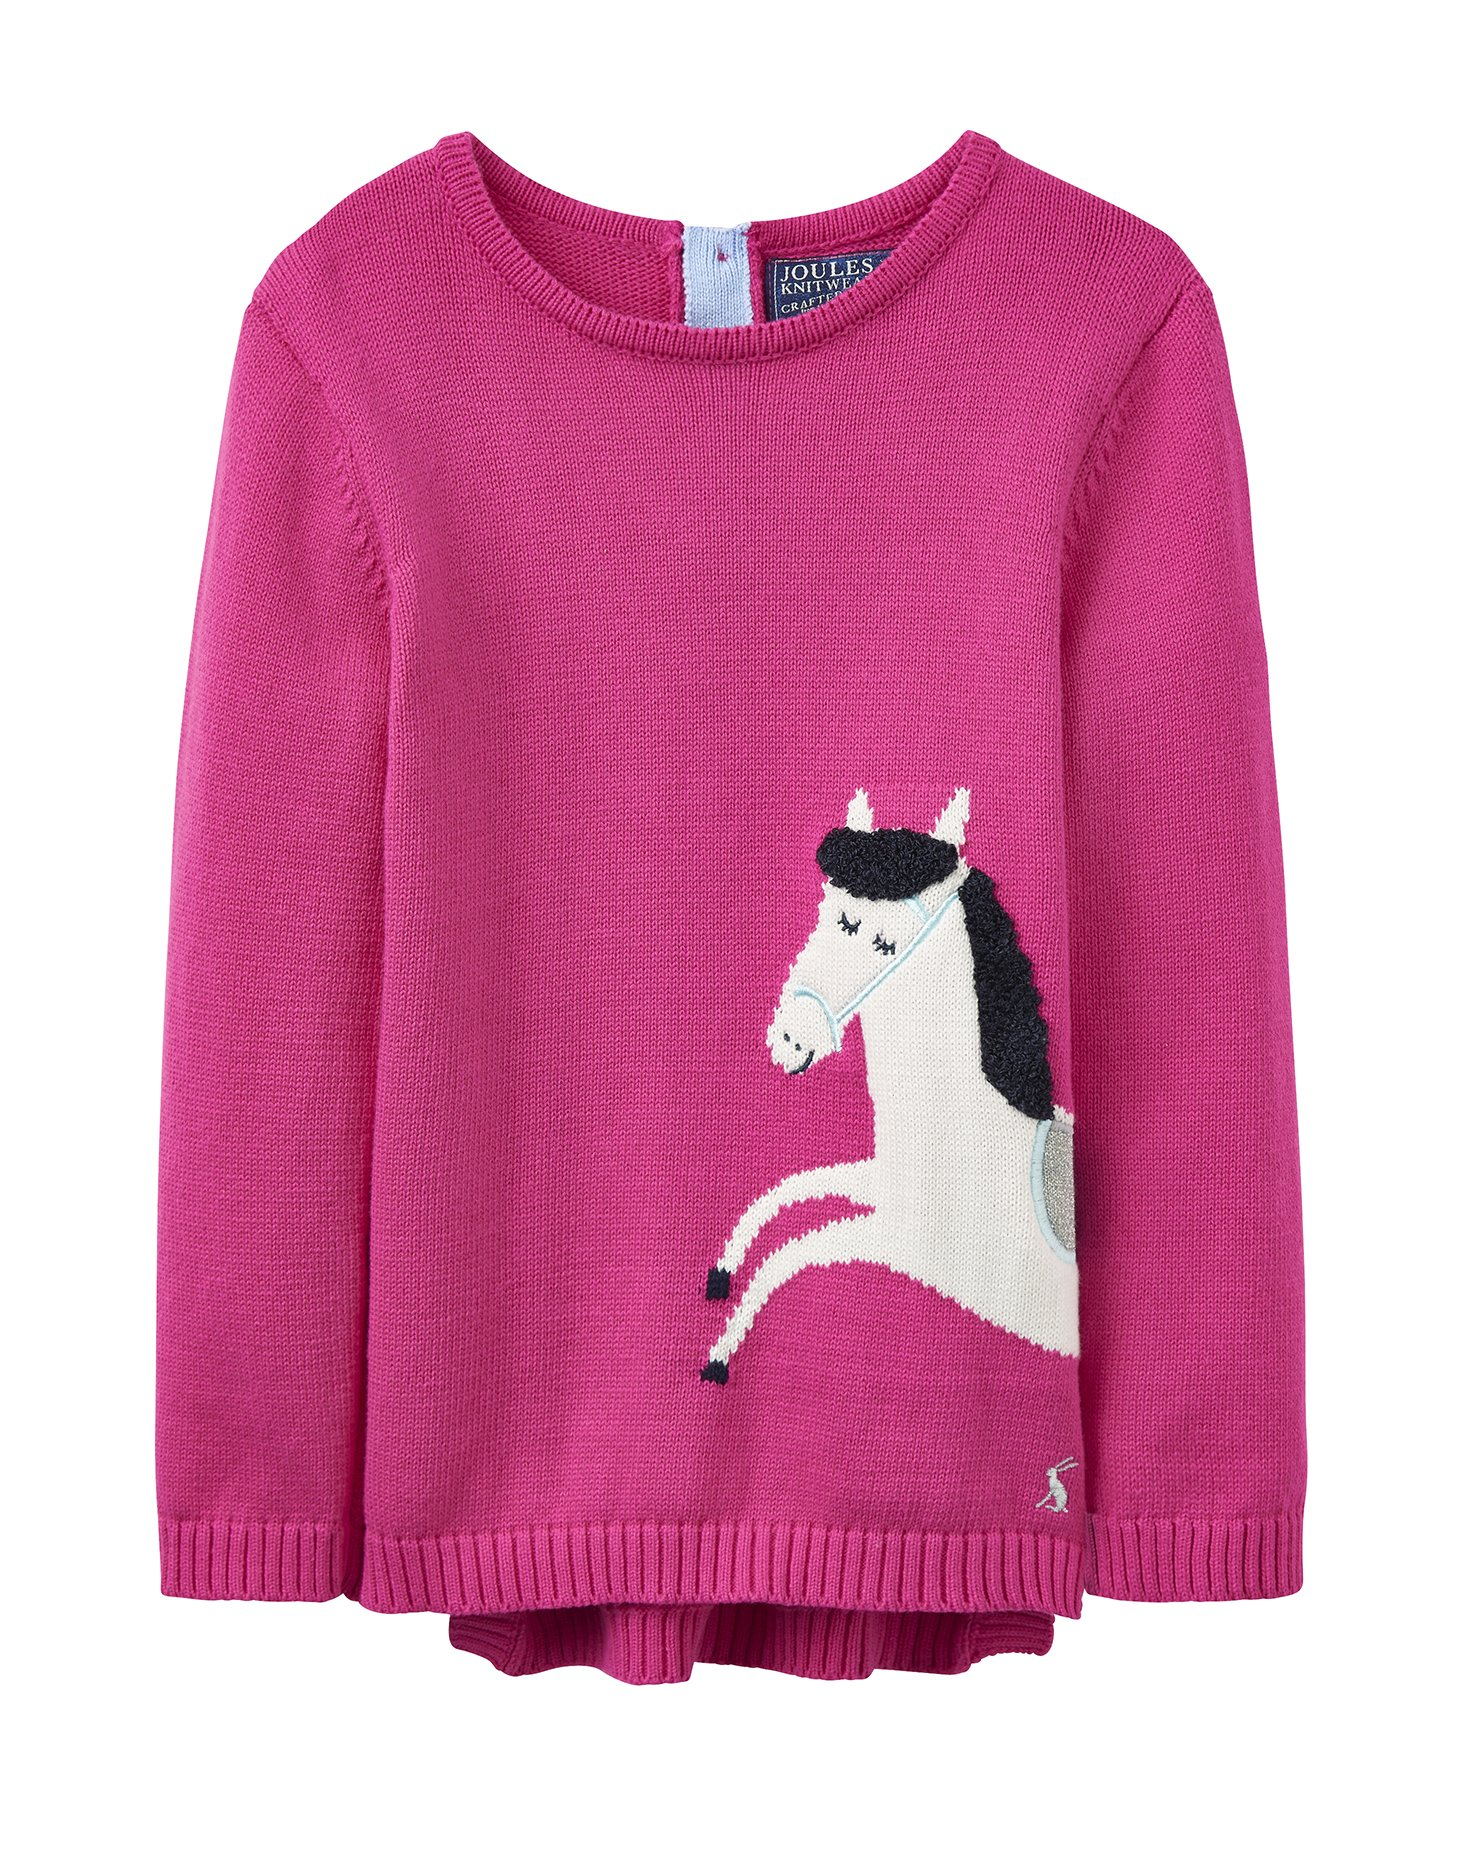 Joules Junior Intarsia Jumper - True Pink Horse - 12-18 Months - 86 cm by Joules